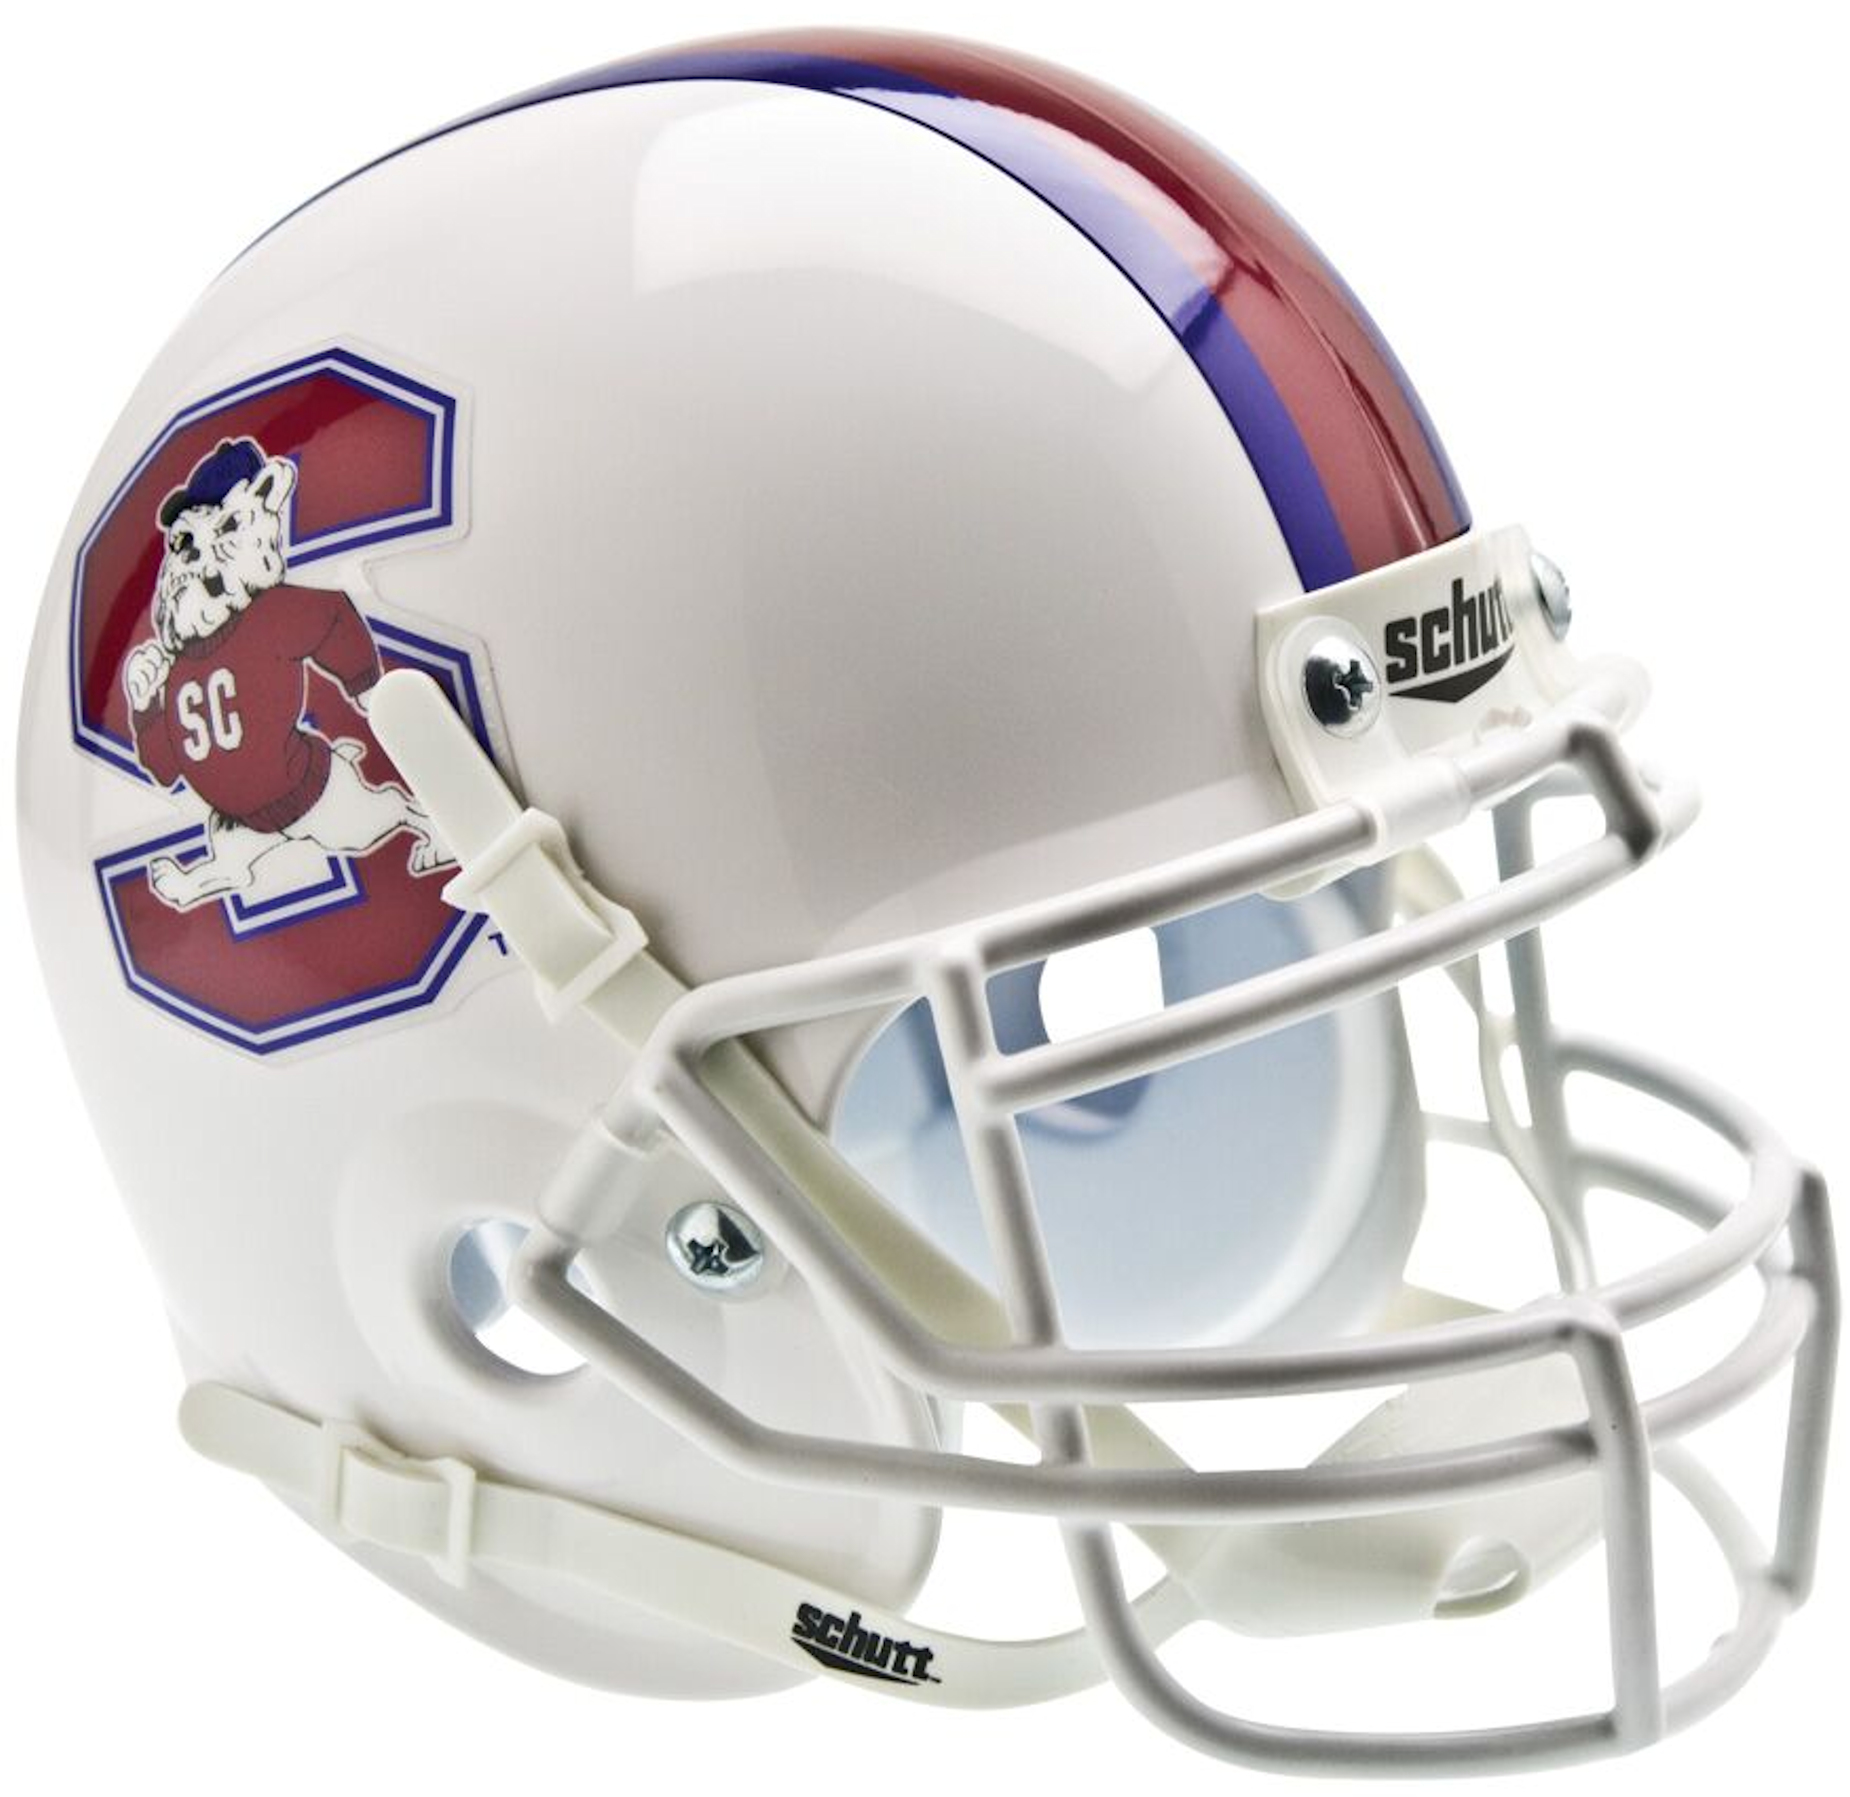 South Carolina State Bulldogs Mini XP Authentic Helmet Schutt